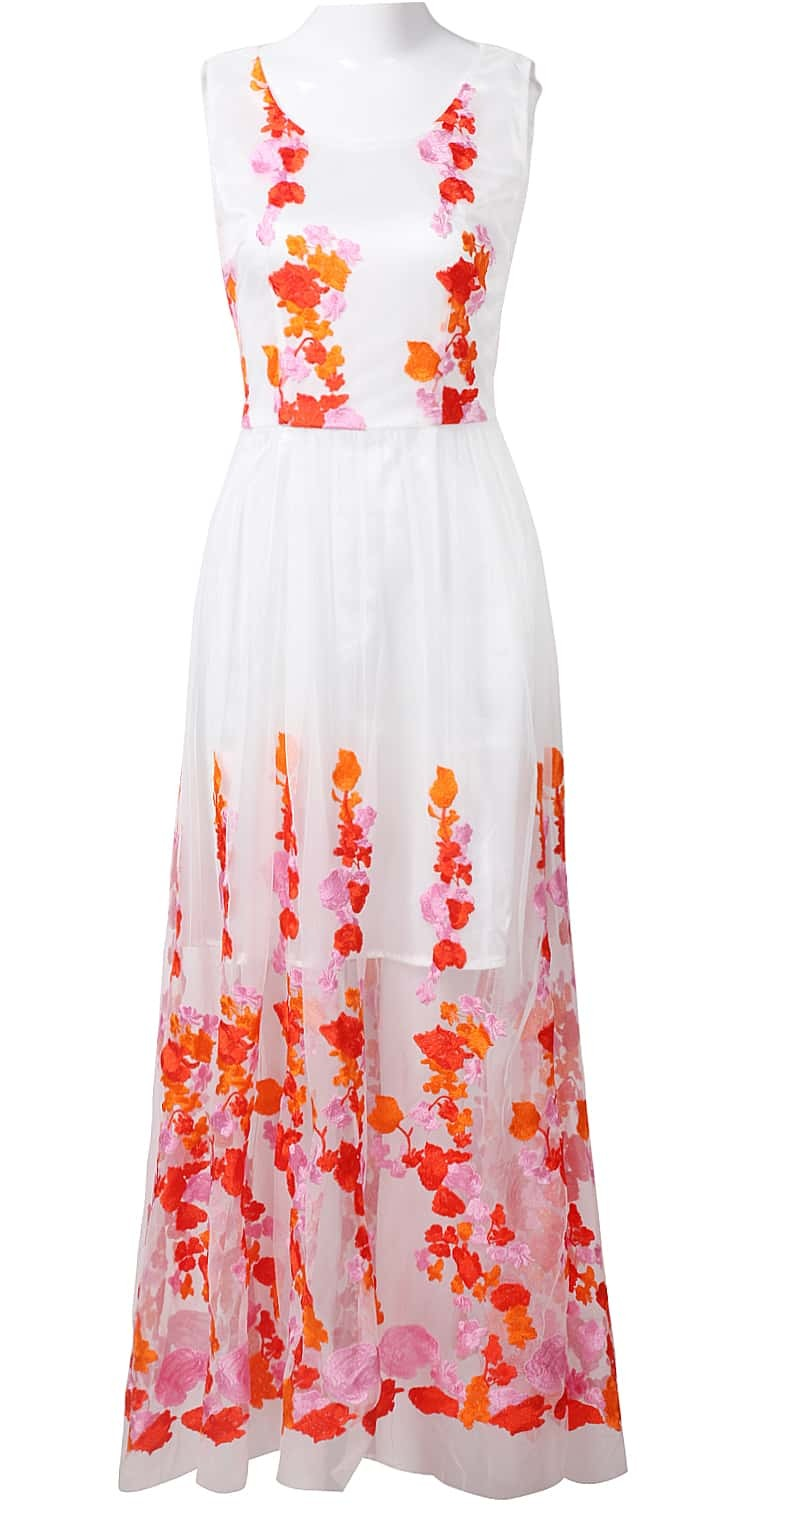 White Sleeveless Embroidered Lace Flowers Maxi Dress Sheinsheinside